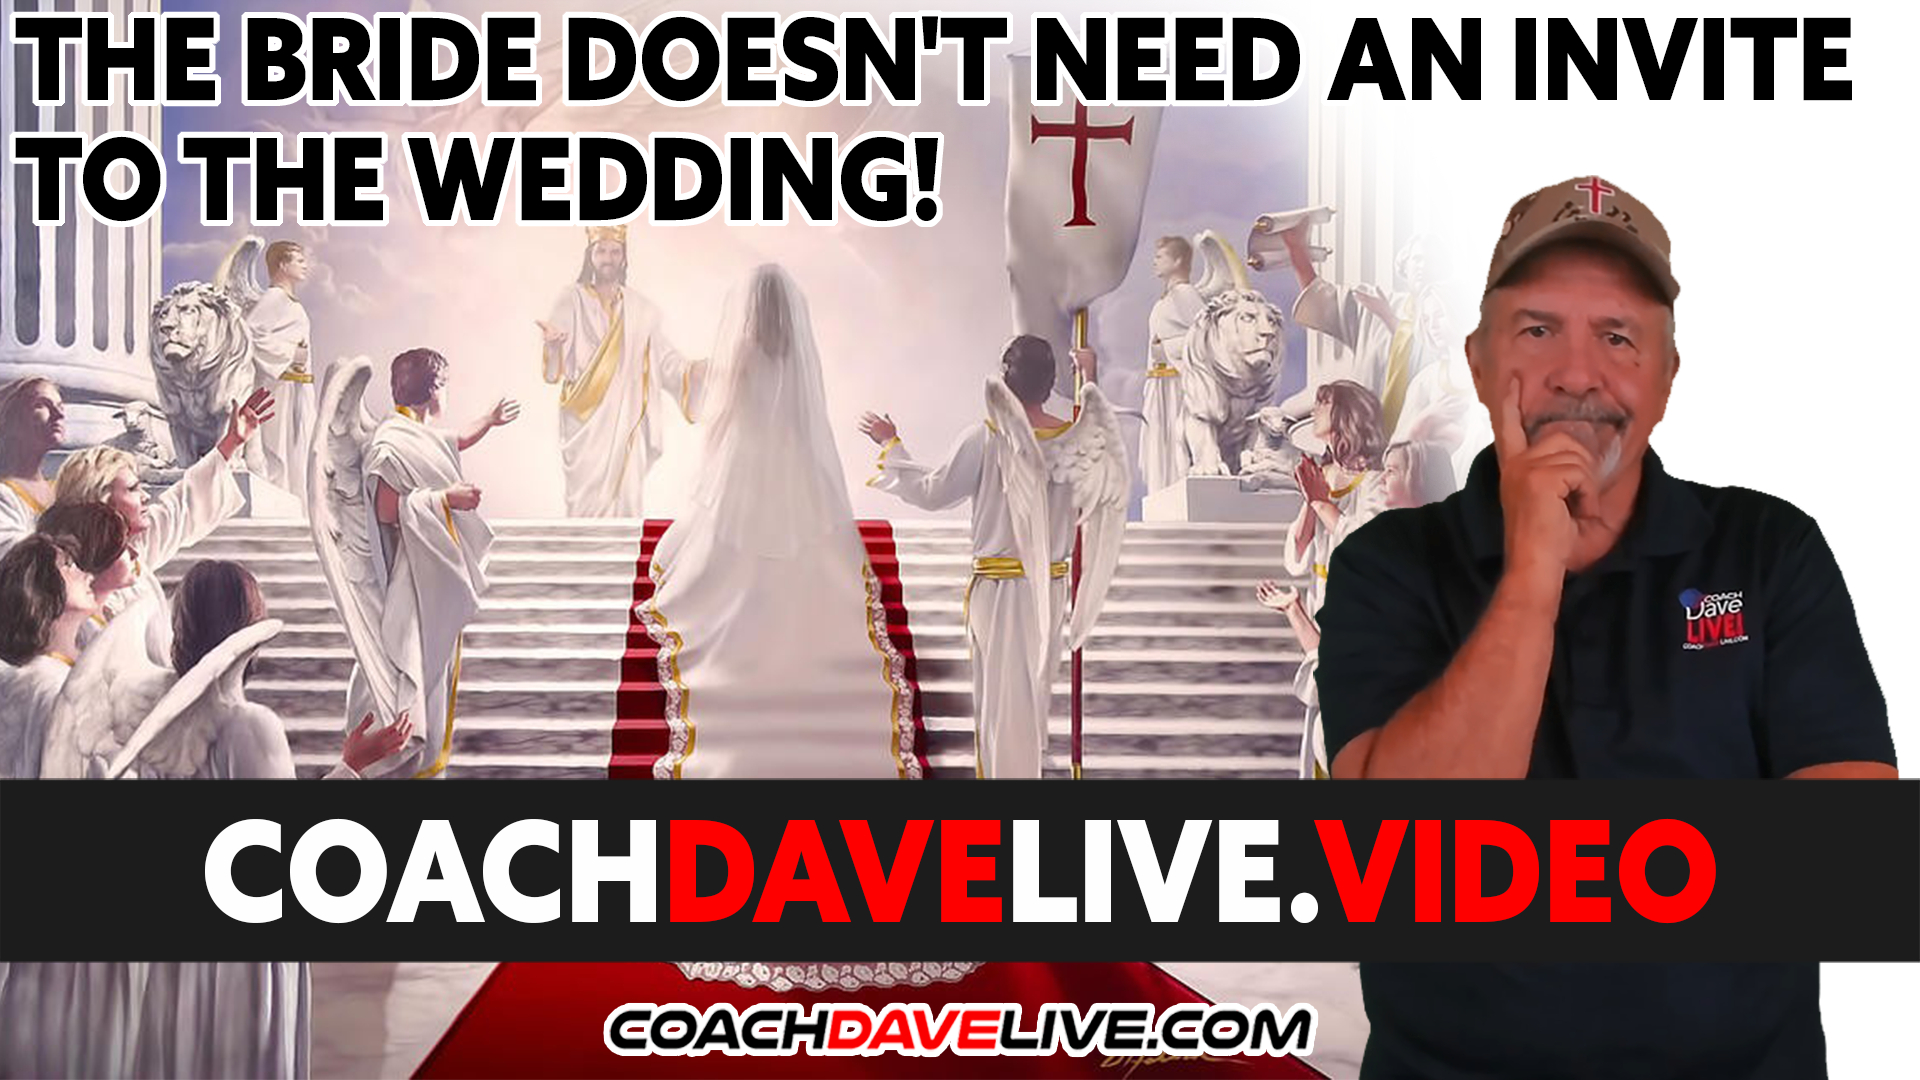 Coach Dave LIVE | 9-17-2021 | THE BRIDE DOESN'T NEED AN INVITE TO THE WEDDING!